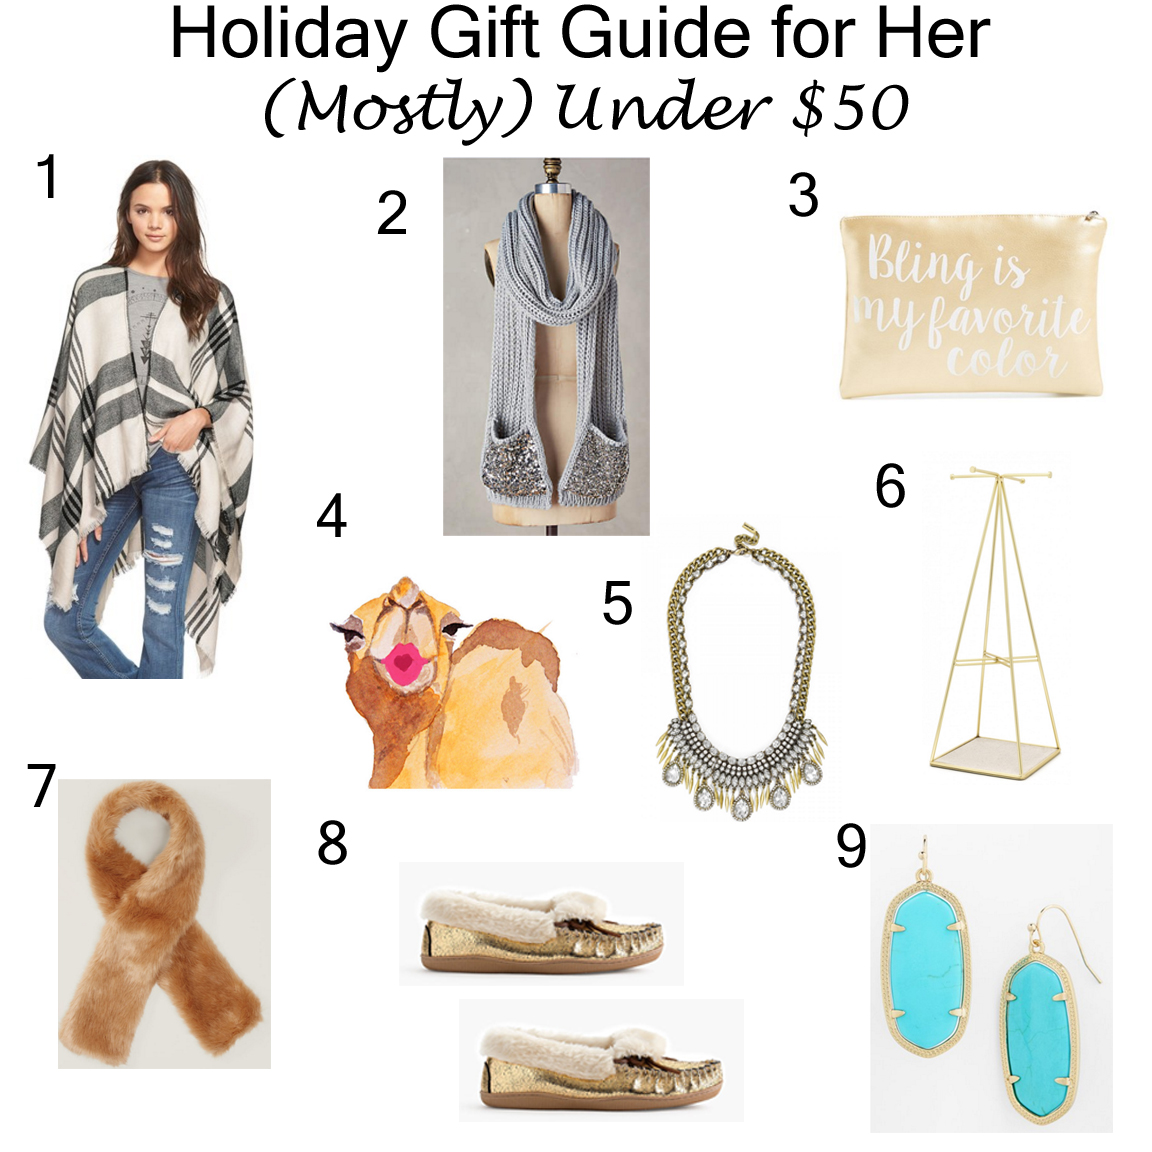 Cyber Monday & Holiday Gift Ideas for Her Under $50 ...